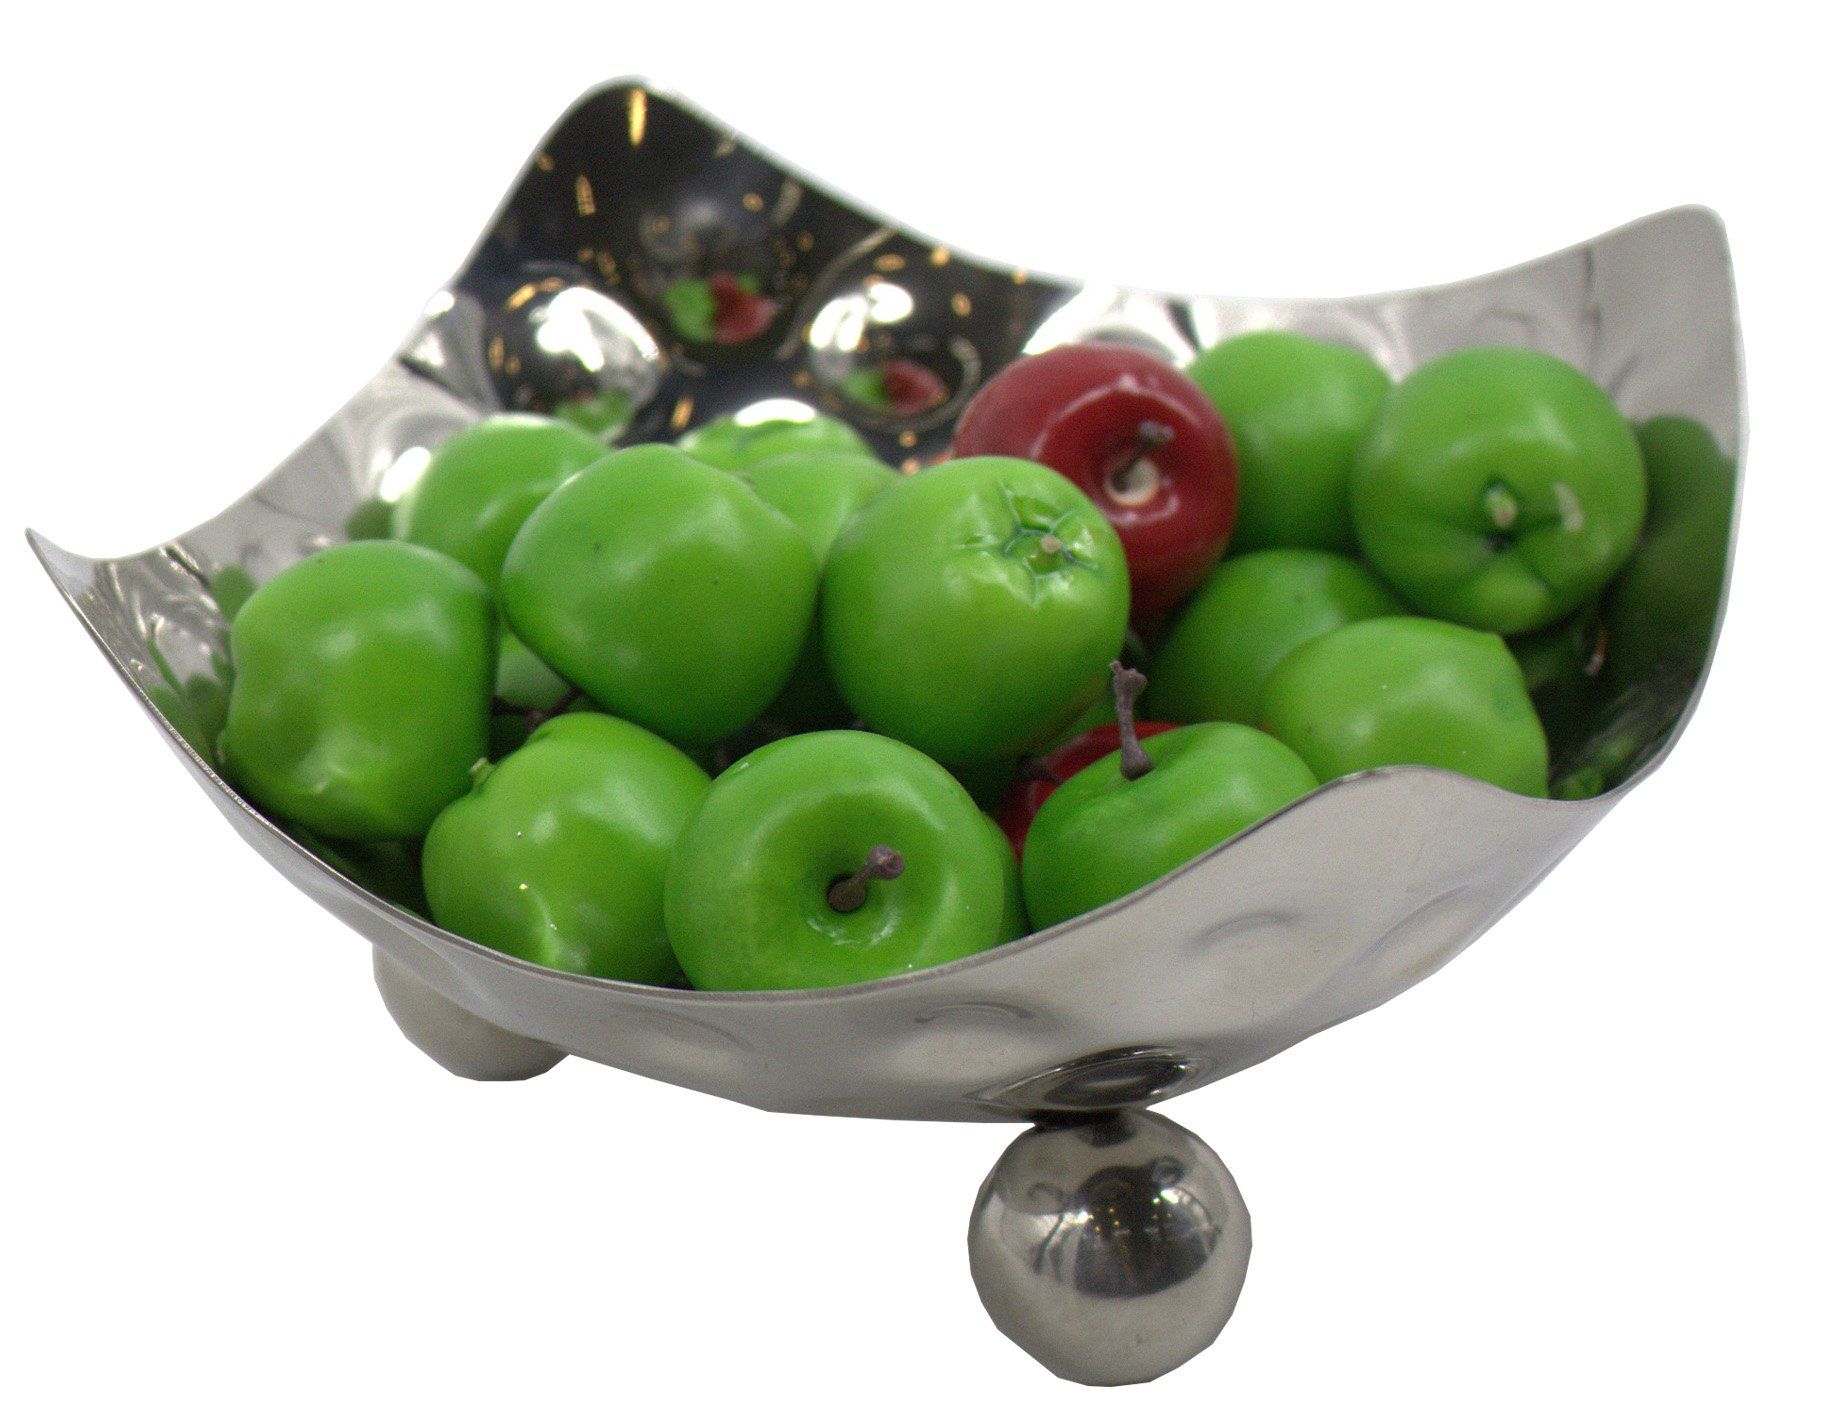 Baohao stainless steel high feet hammer fruit dish salad plate salad plate fruit bowl small food plate hotel suppliesV6